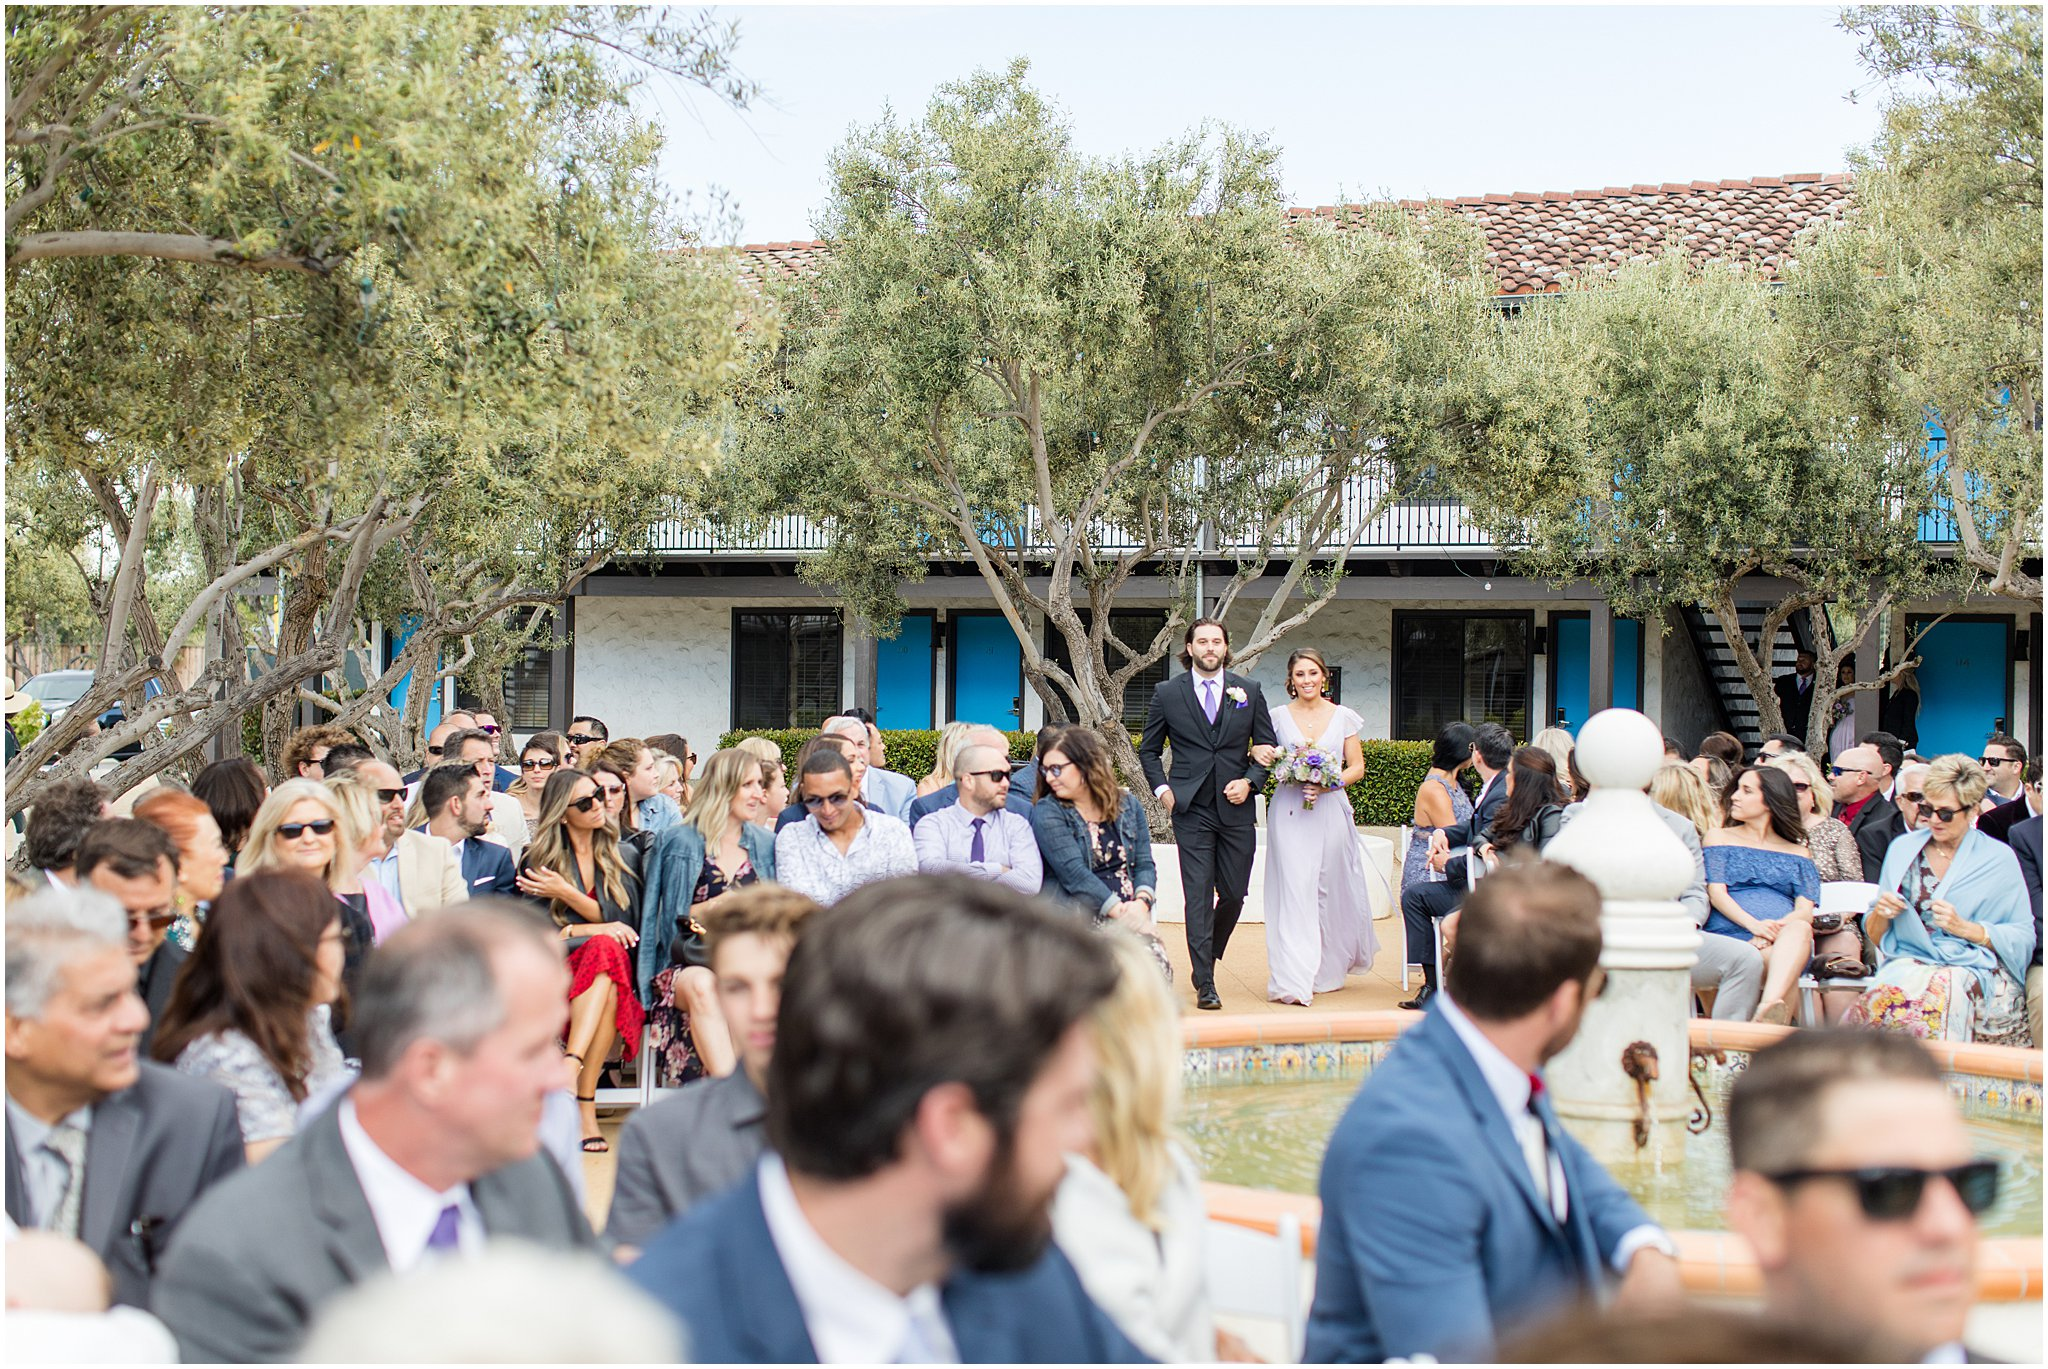 2019 wedding san juan bautista hacienda de leal vineyards bay area wedding photographer_0040.jpg